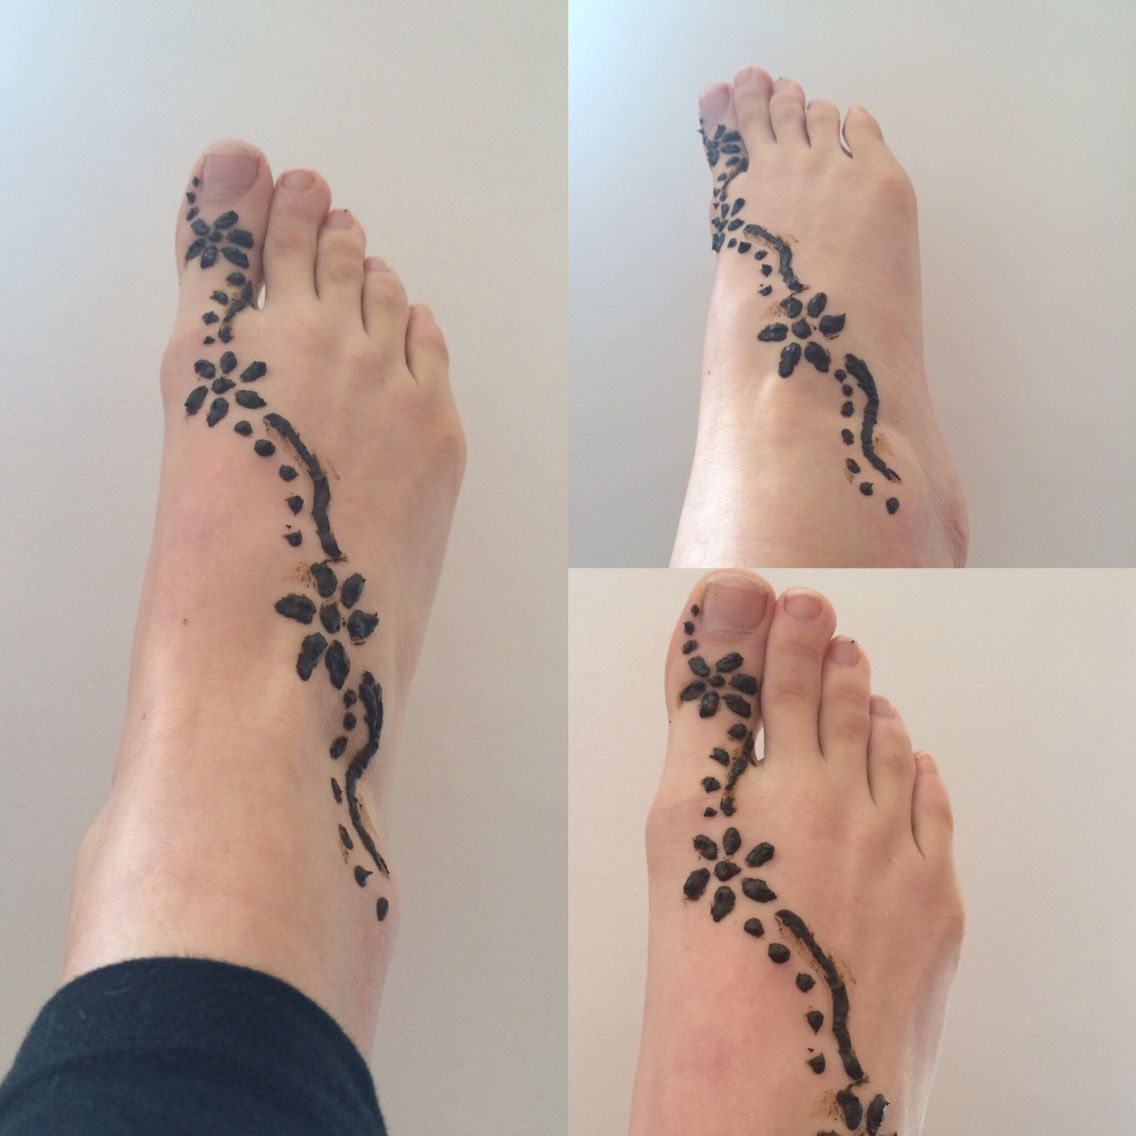 Simple Henna Tattoo Designs For Wrist: EASY Henna Design For Beginners! Takes 10-15 Mins